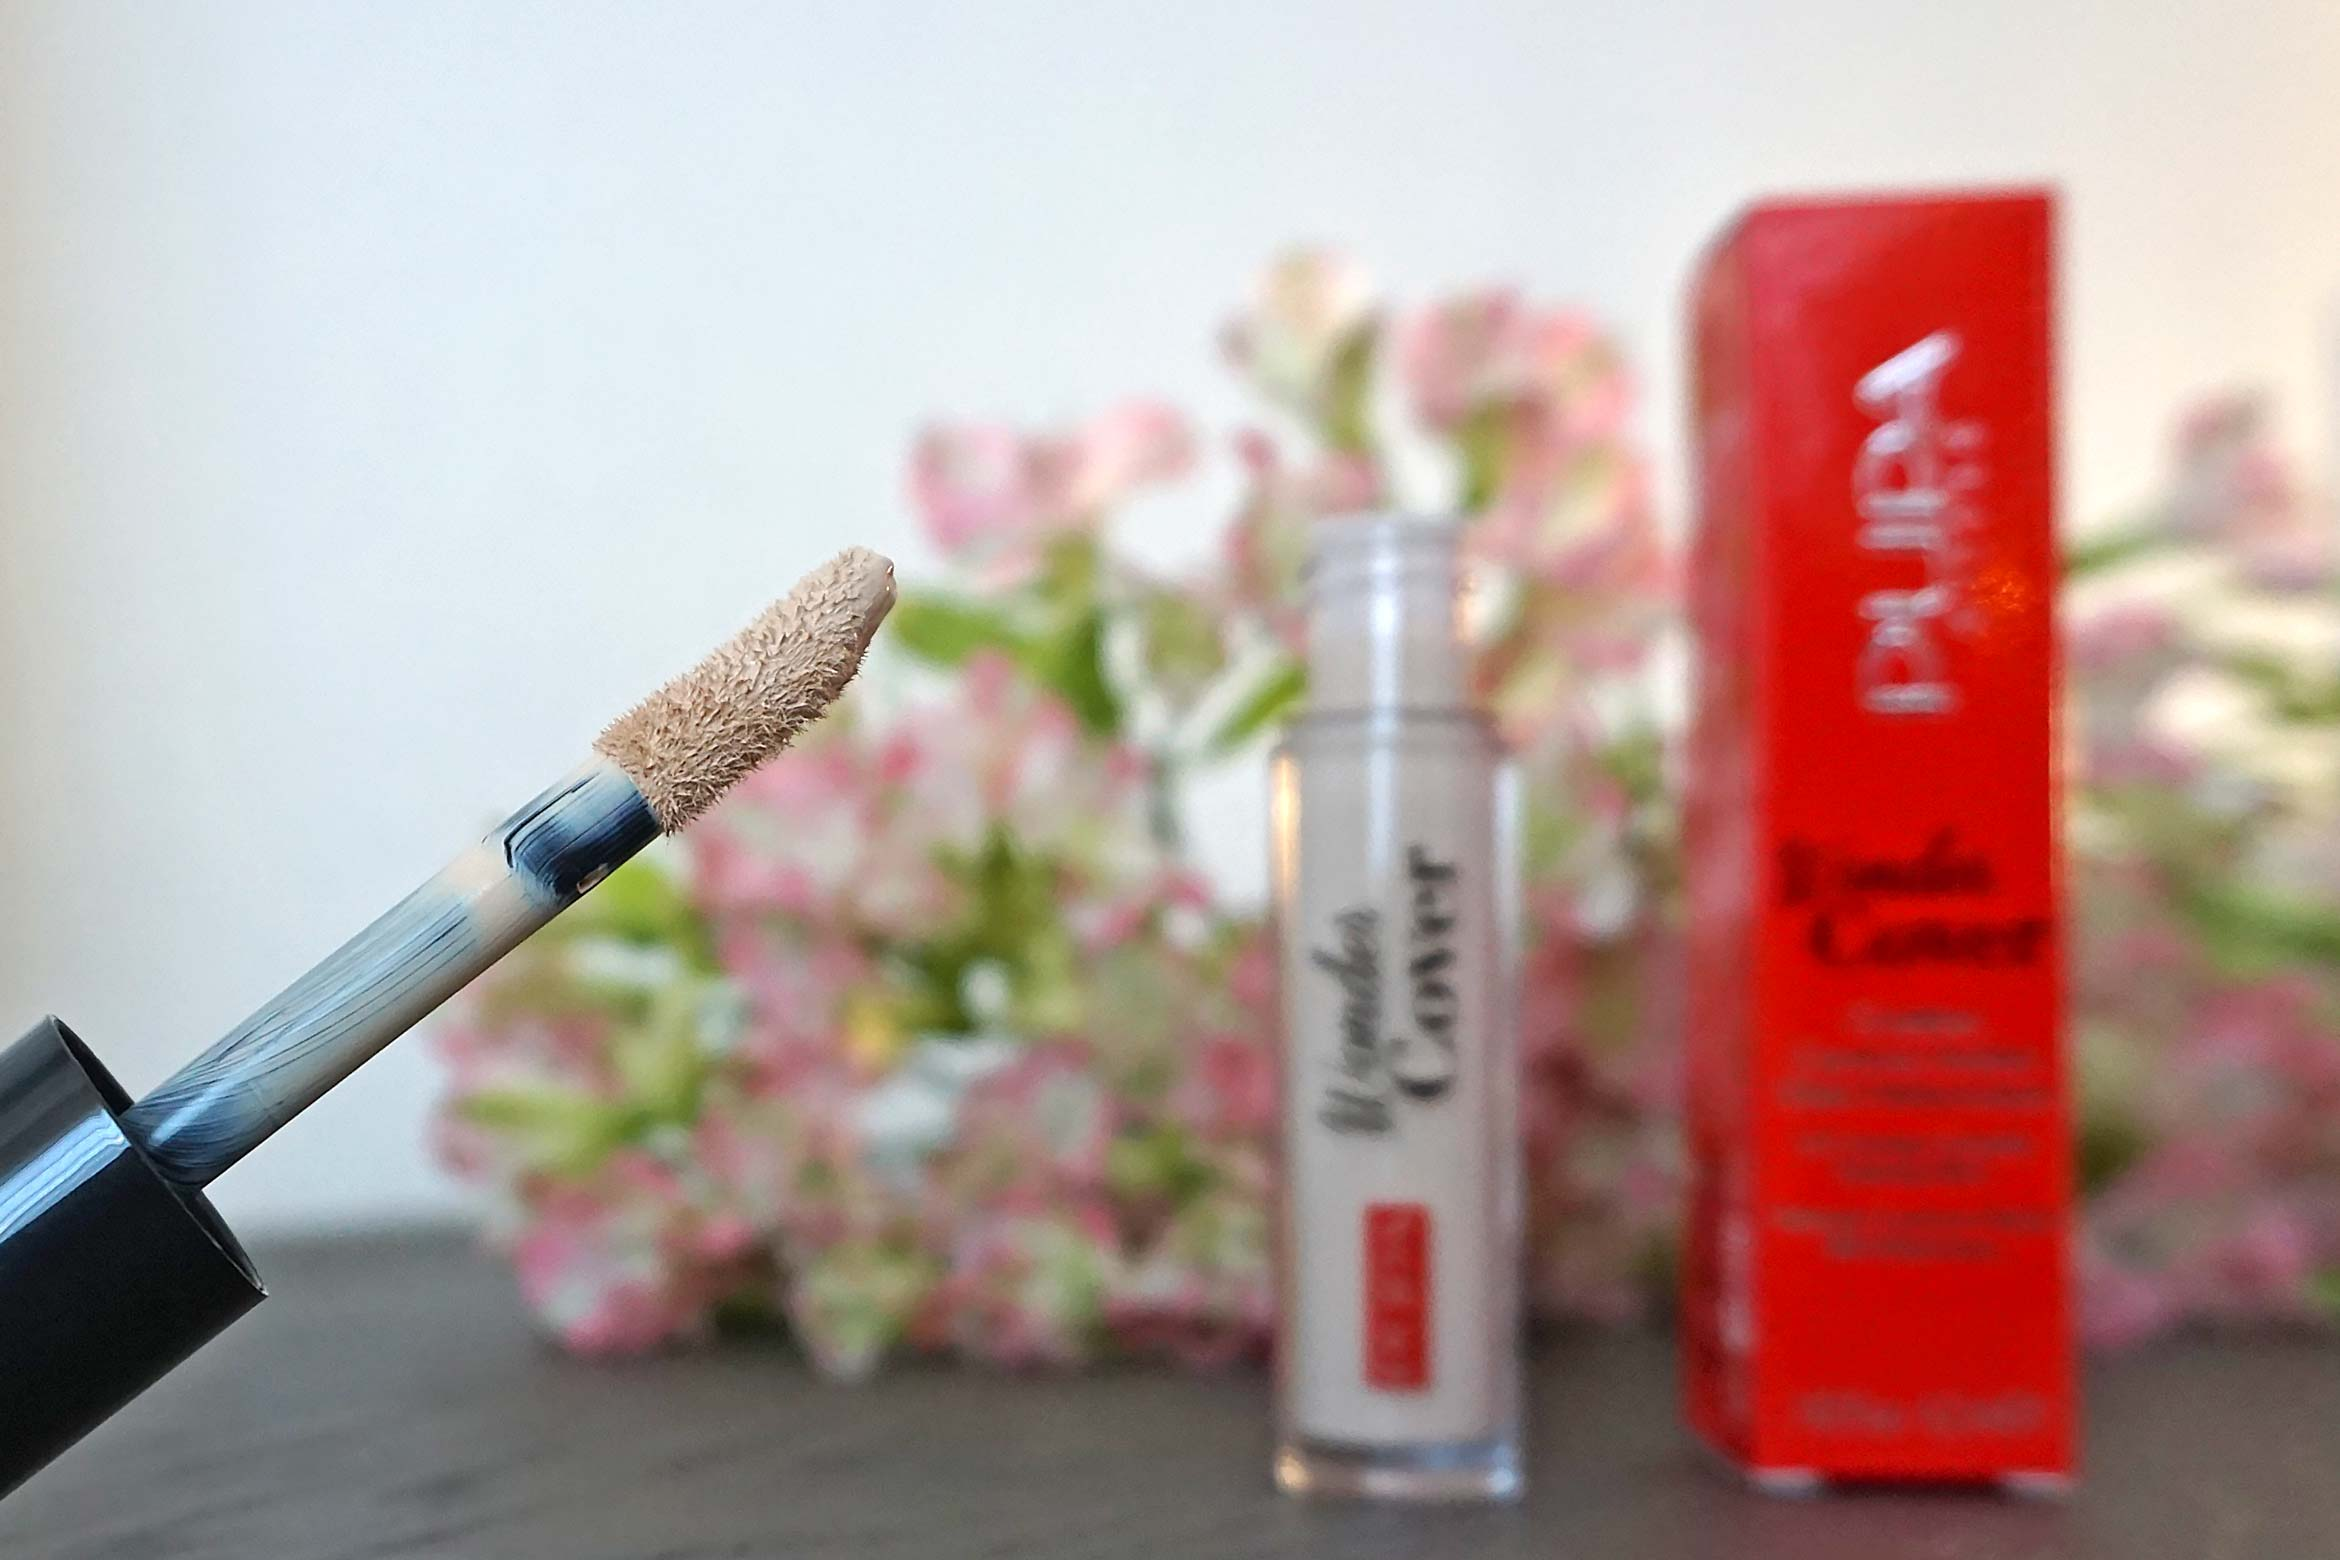 pupa wonder cover concealer review-2